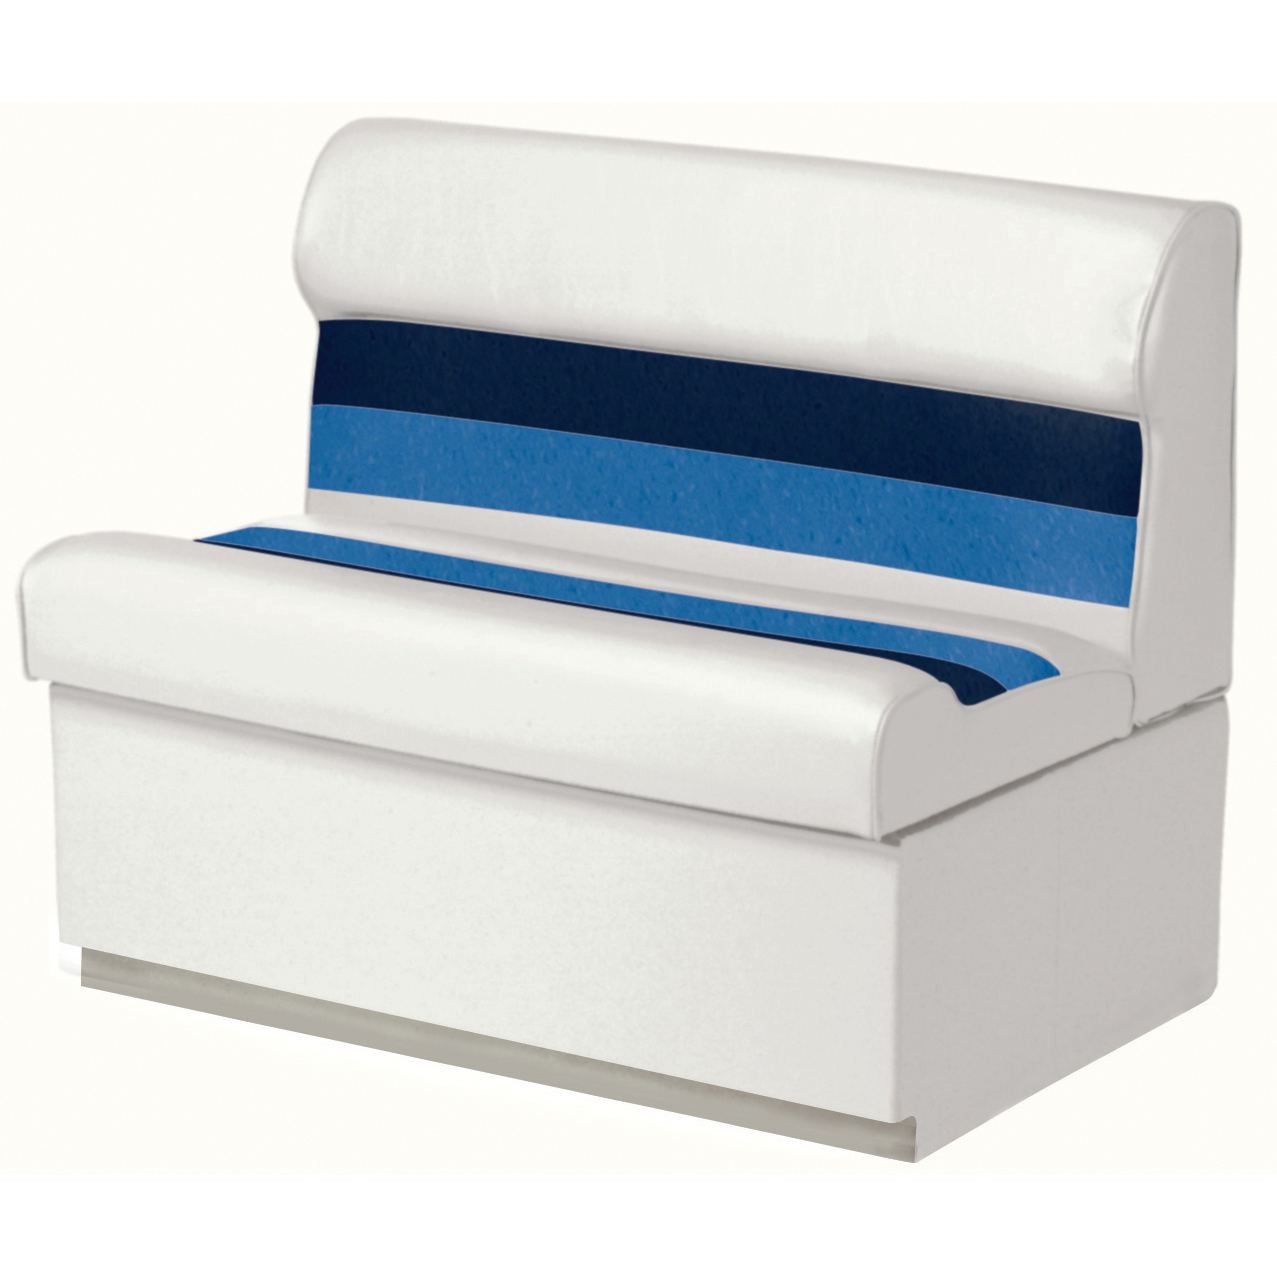 "Toonmate Deluxe Pontoon 27"" Wide Lounge Seat with Toe Kick Base, White"